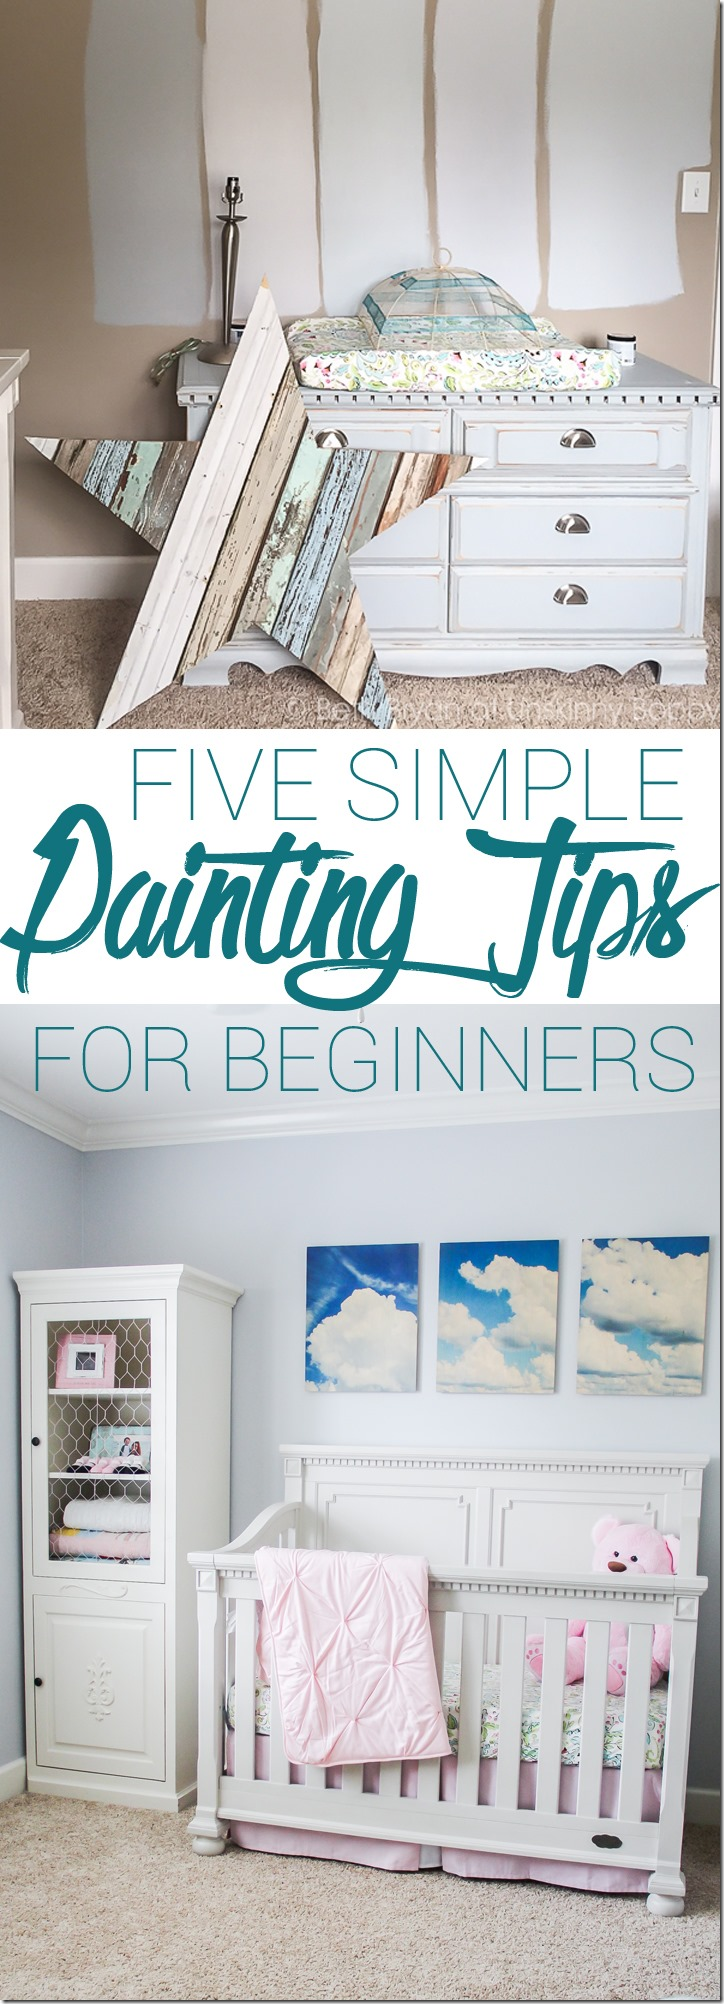 Five-simple-painting-tips-for-beginners_thumb.jpg